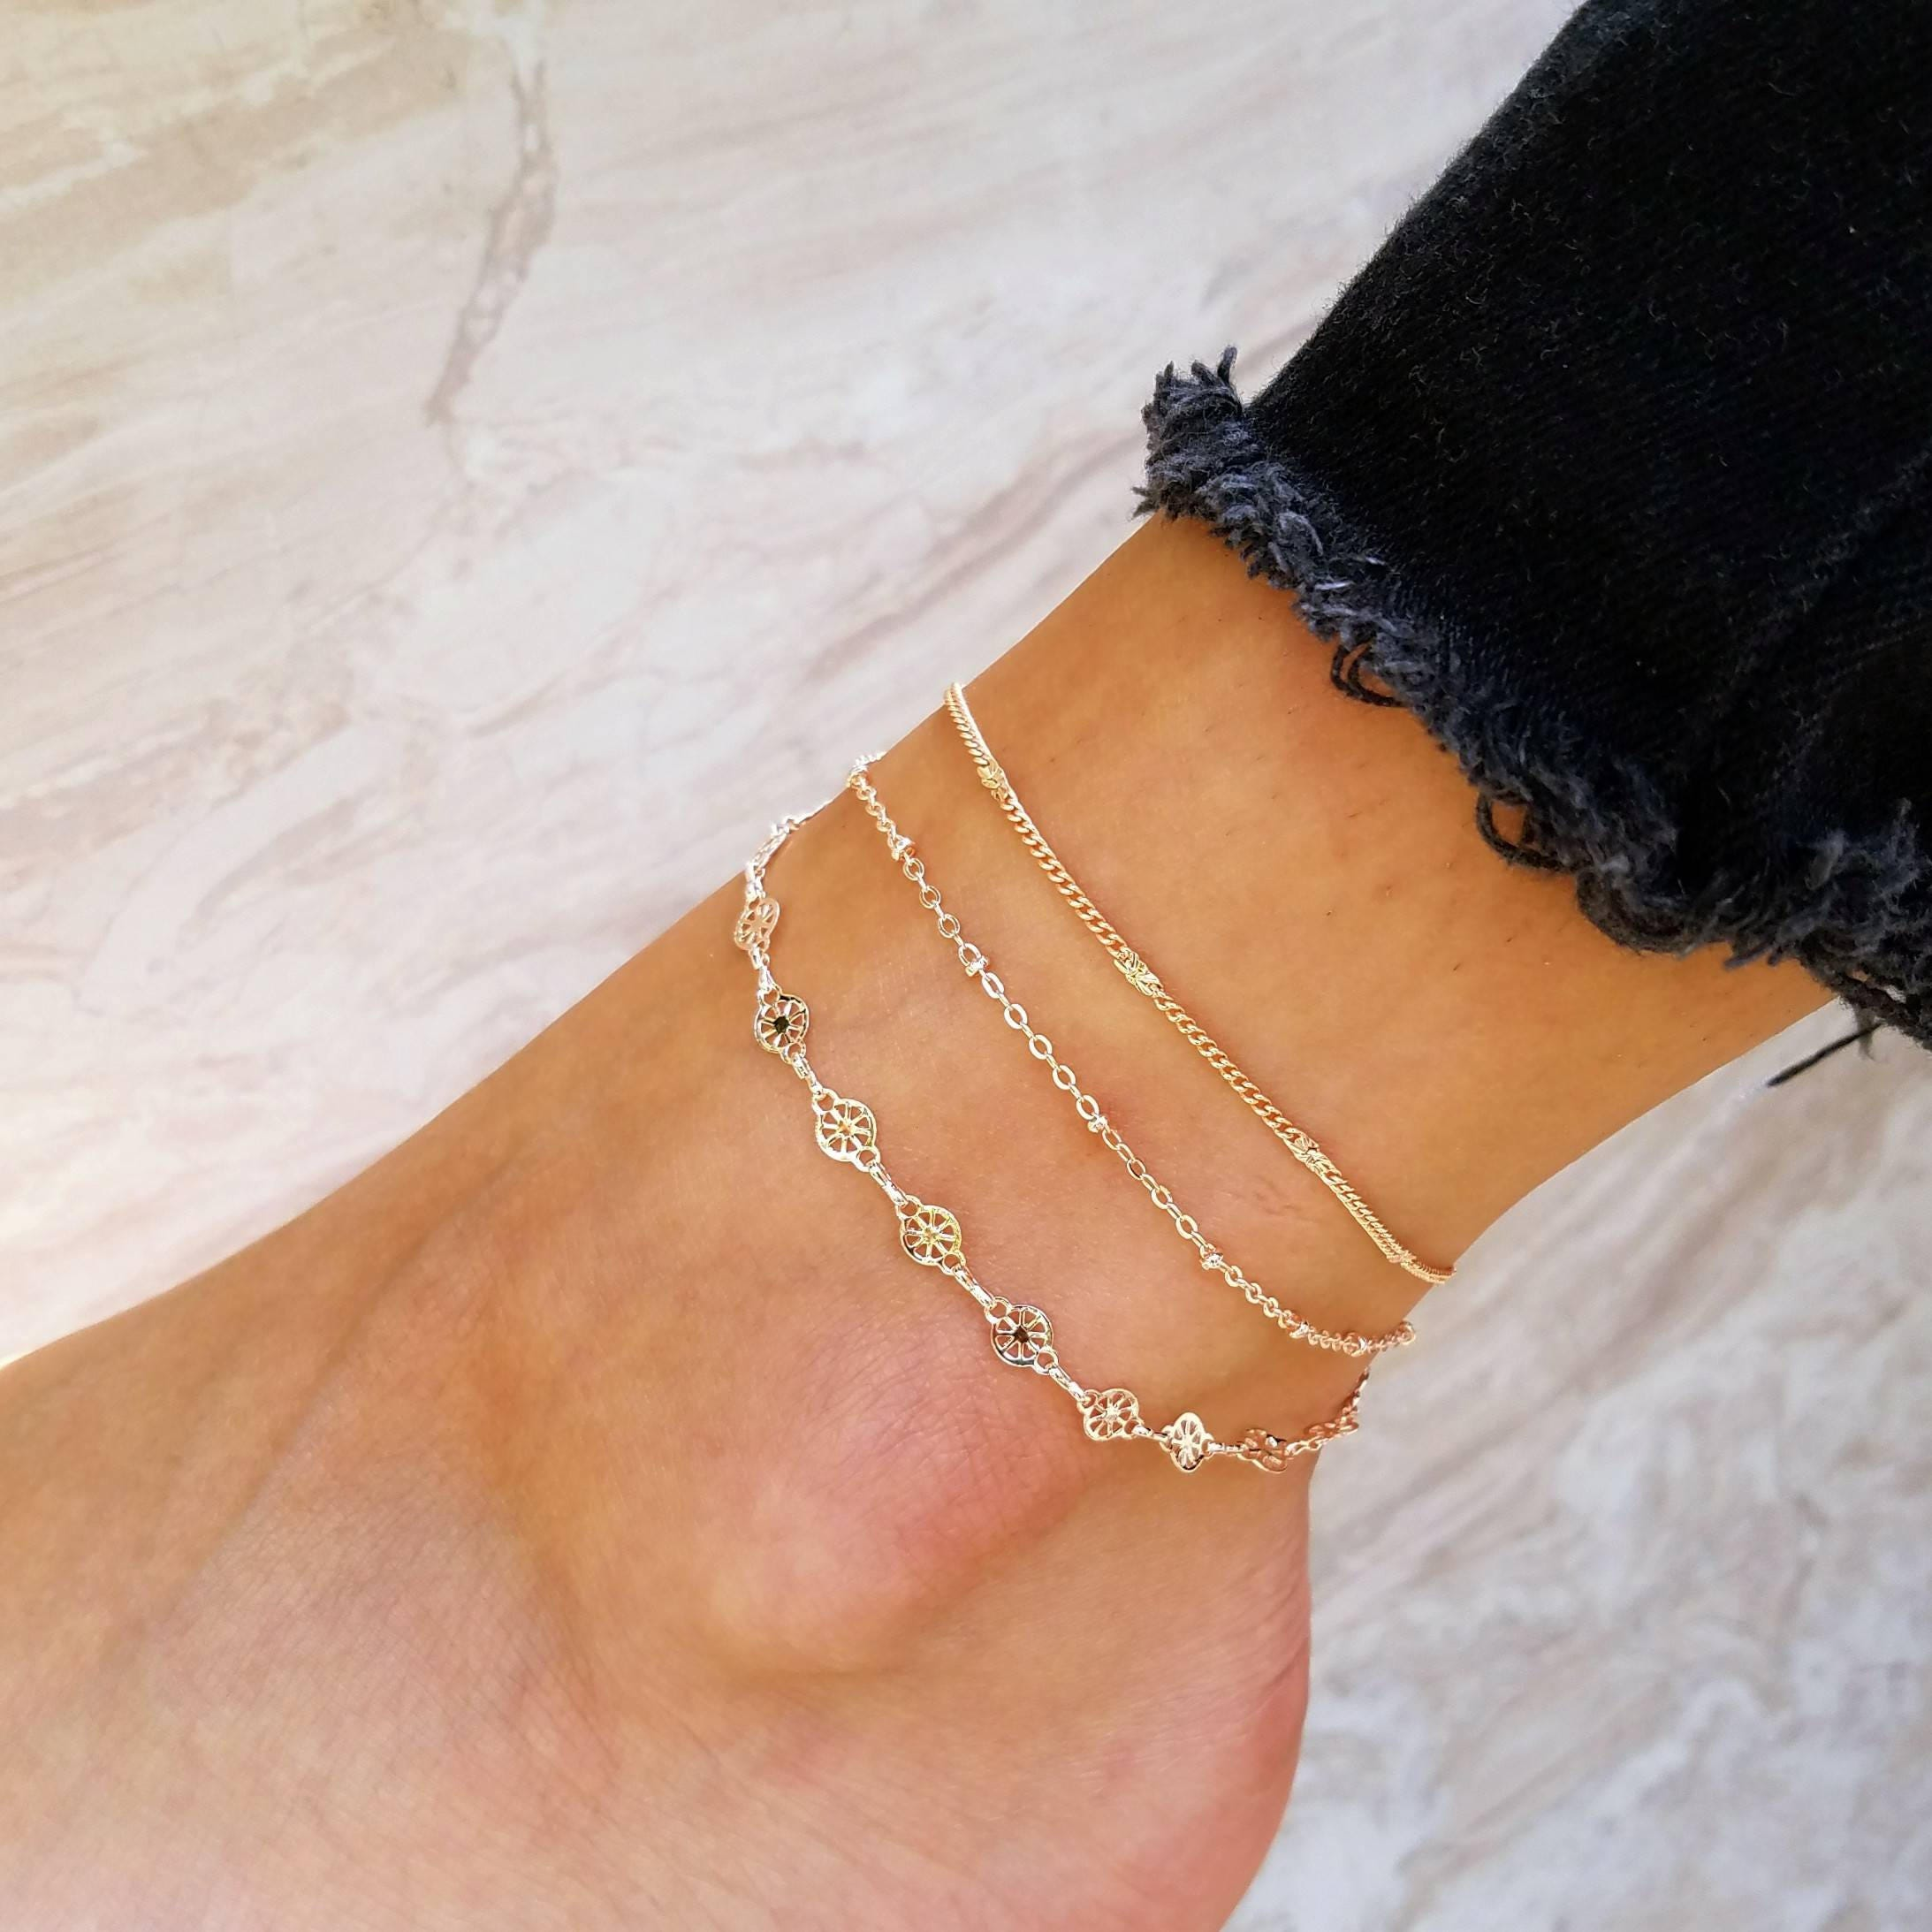 zoom ankle anklet listing fullxfull dk bracelet ecff en gold il diamond dainty women for ball anklets